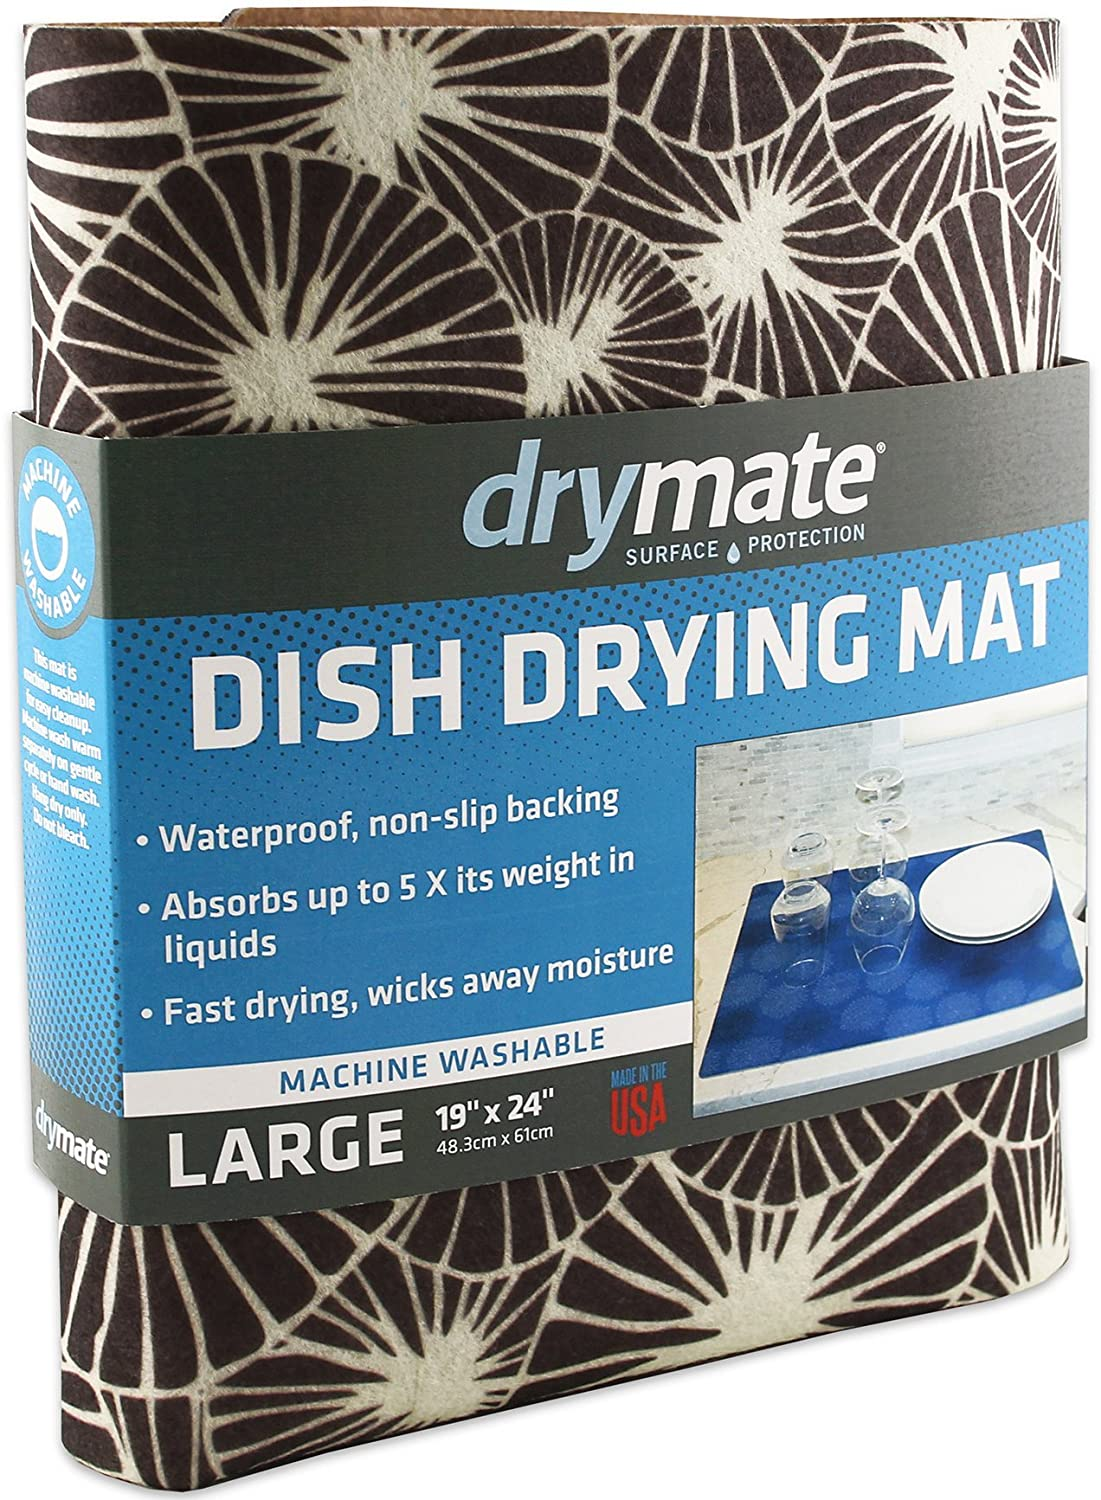 Drymate Dish Drying Mat, Premium XL (19 Inches x 24 Inches) Kitchen Dish Drying Pad – Absorbent/Waterproof – Machine Washable (Made in the USA) (Kahopo Grey)